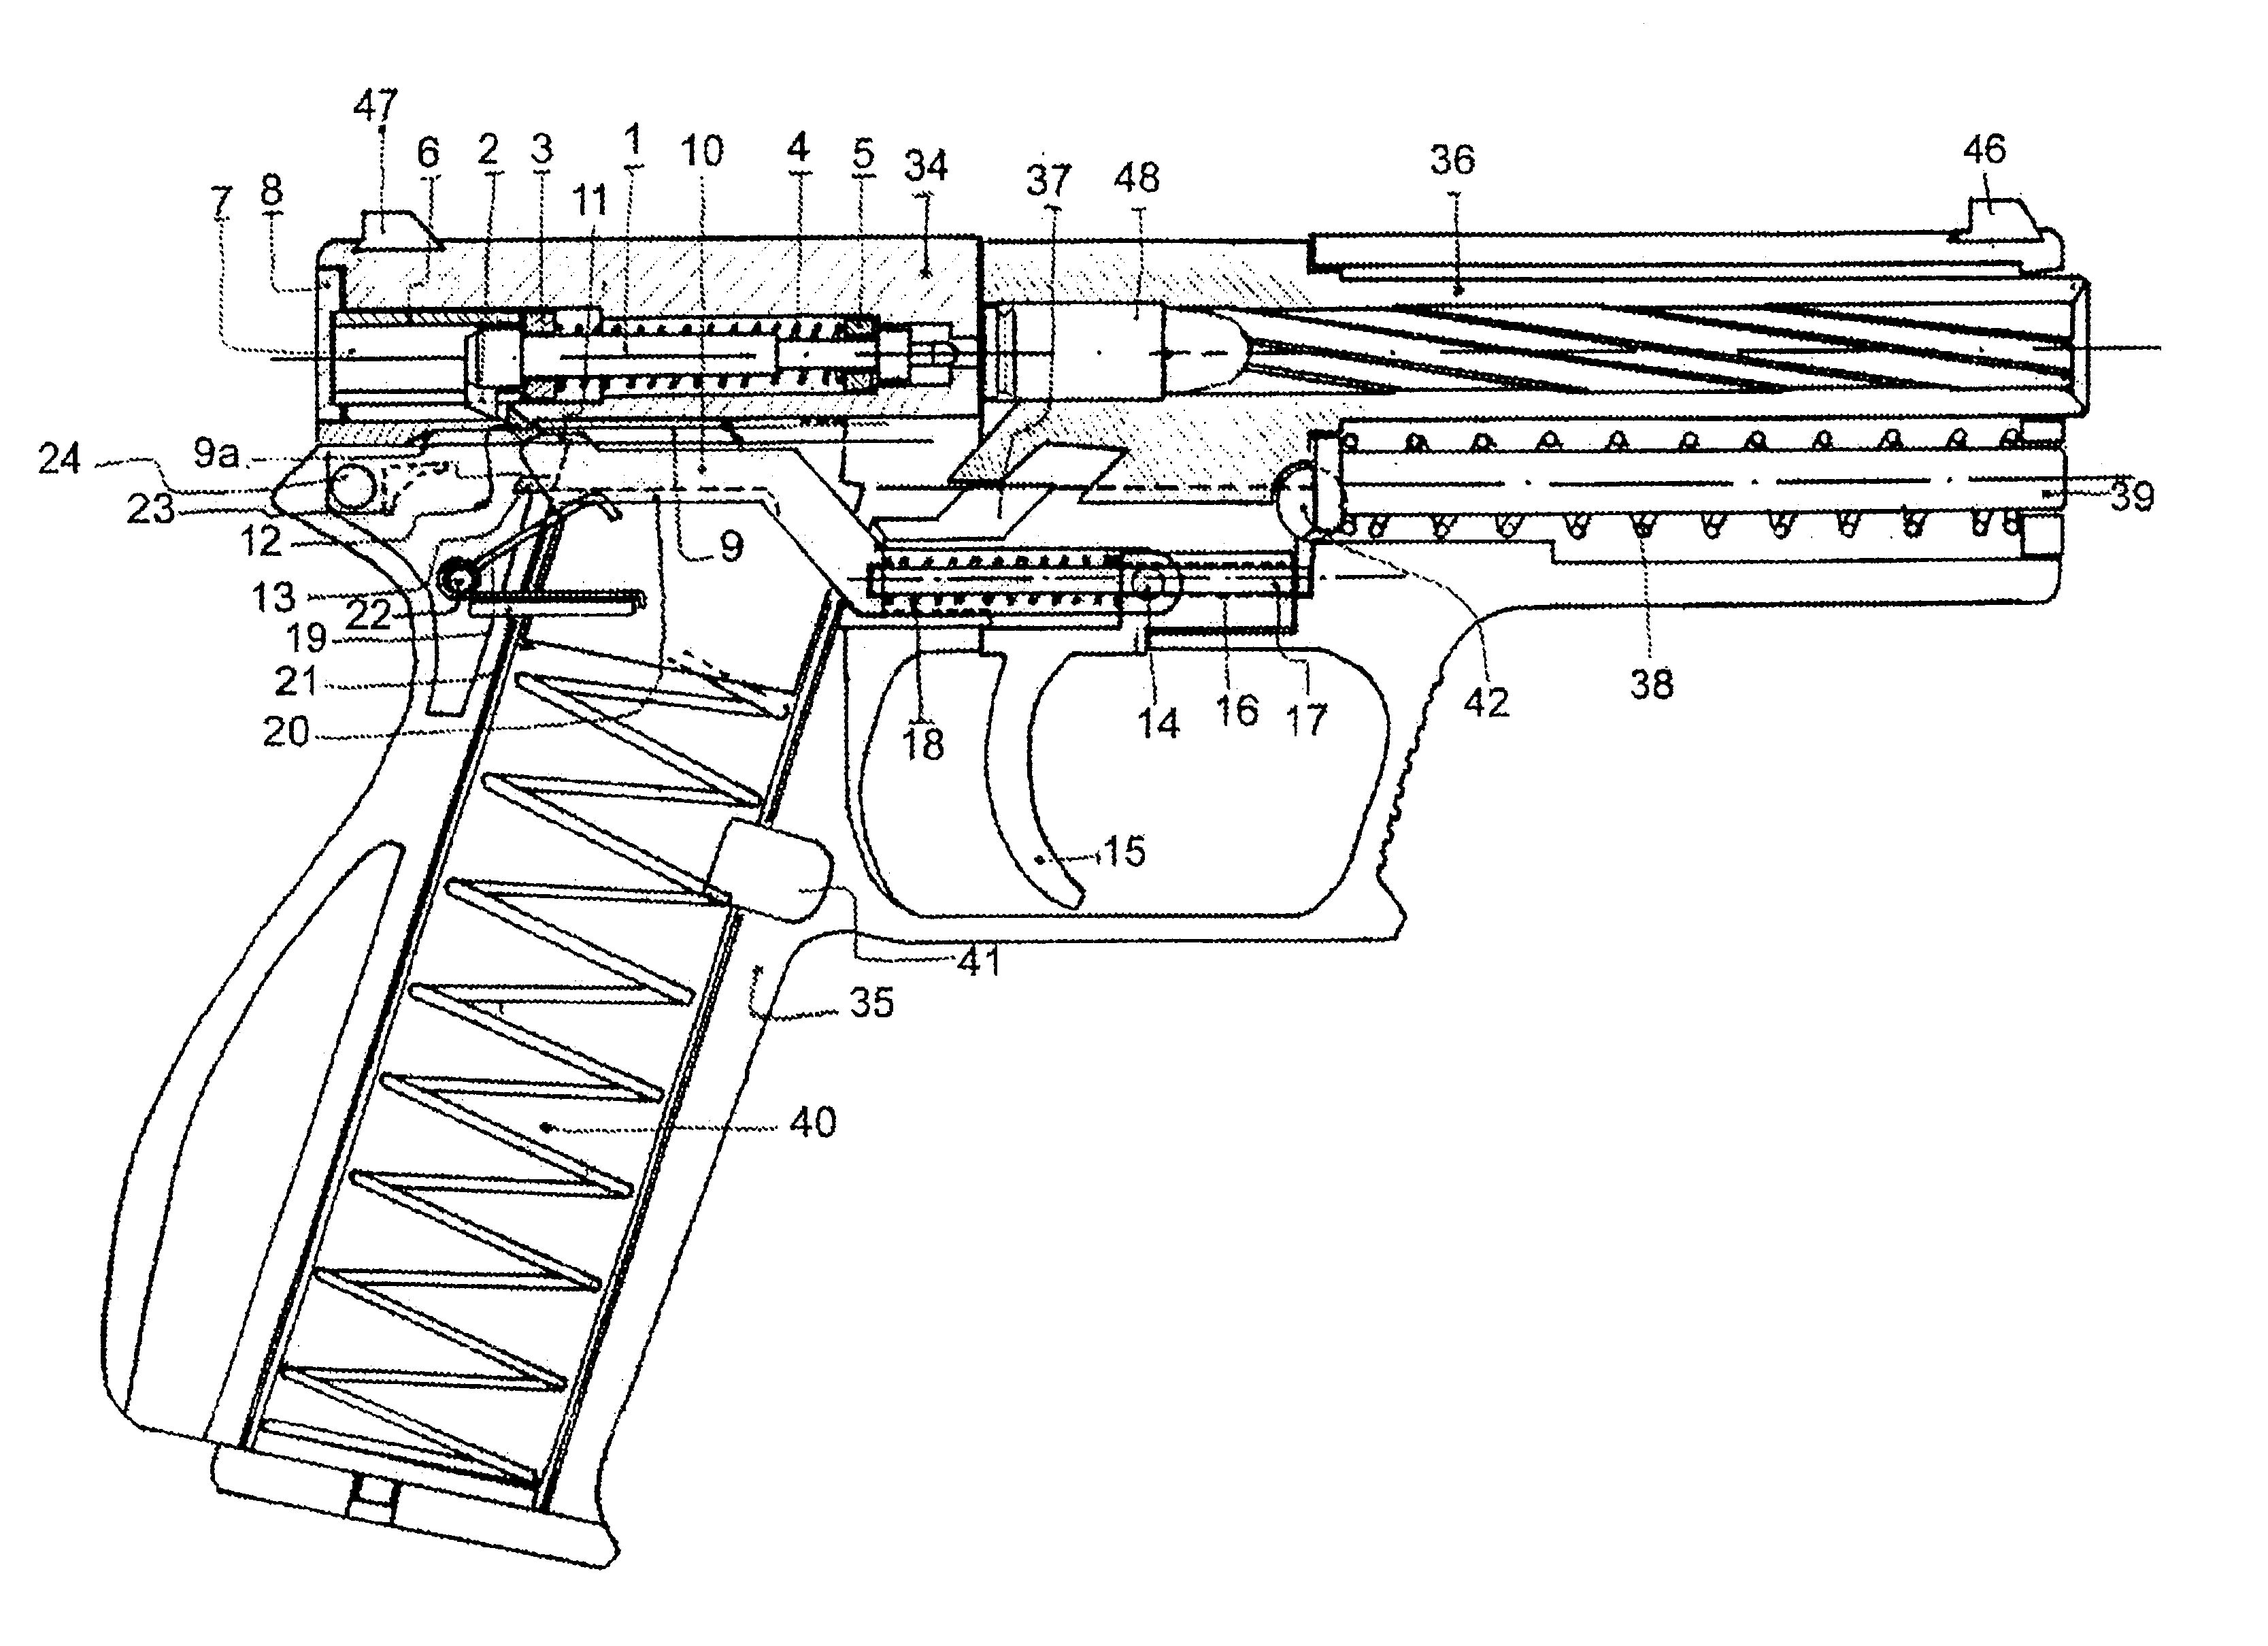 medium resolution of striker trigger mechanism for automatic and semi automatic firearms